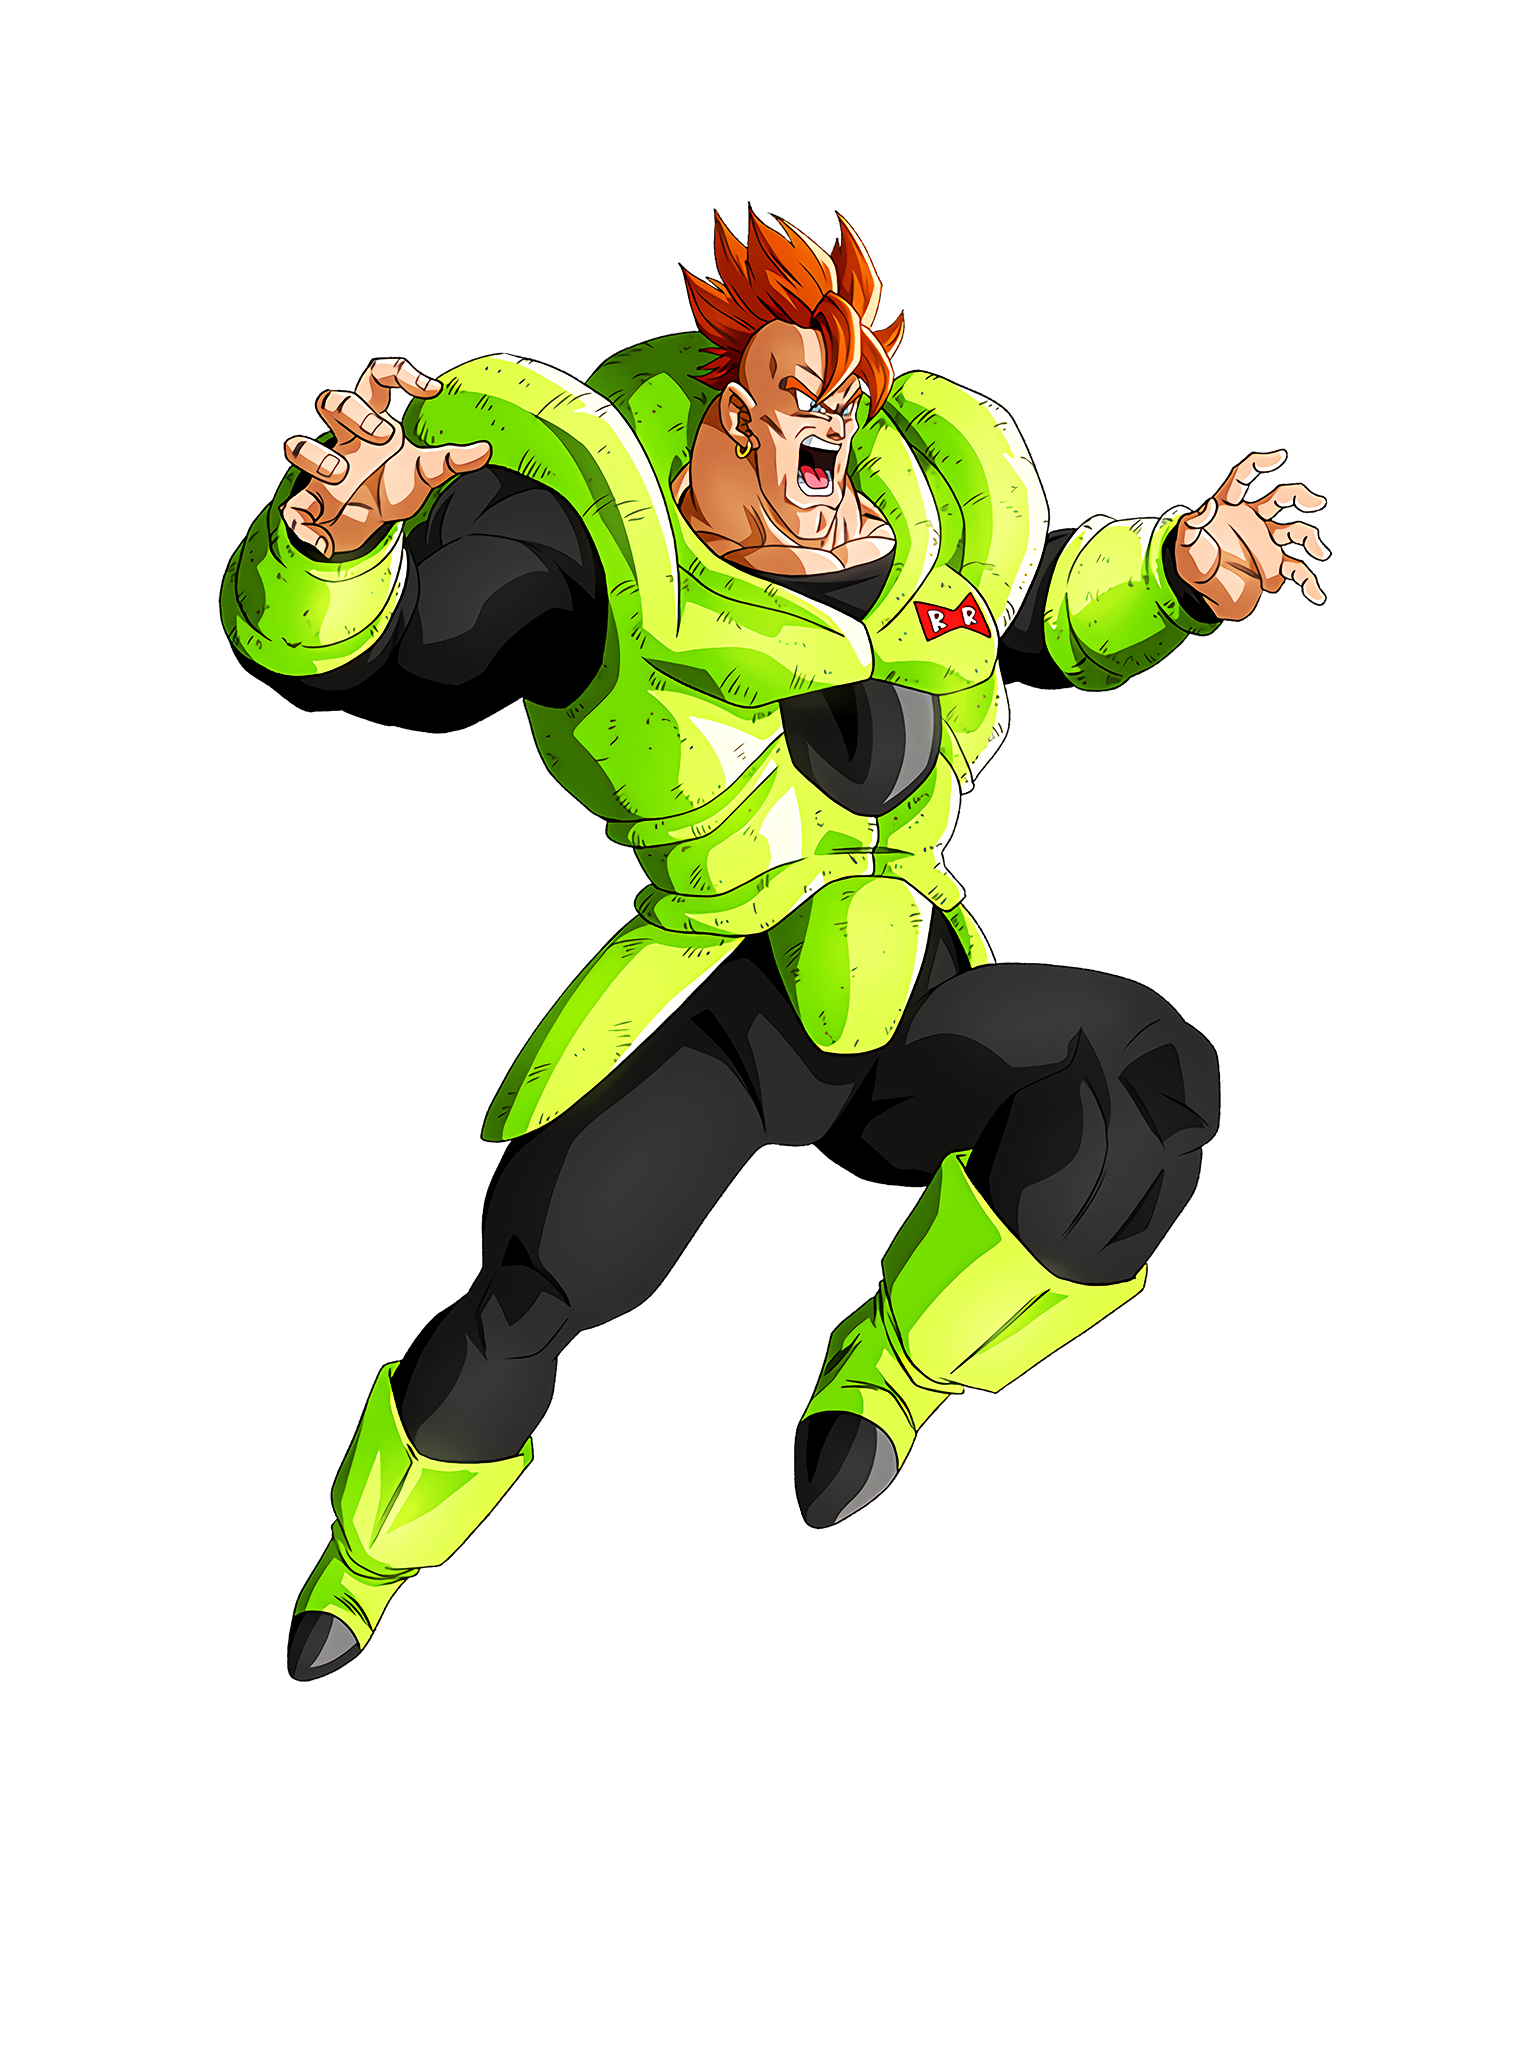 In Resurrection Android 16 Character Render (Dragon Ball Z Dokkan Battle) .png